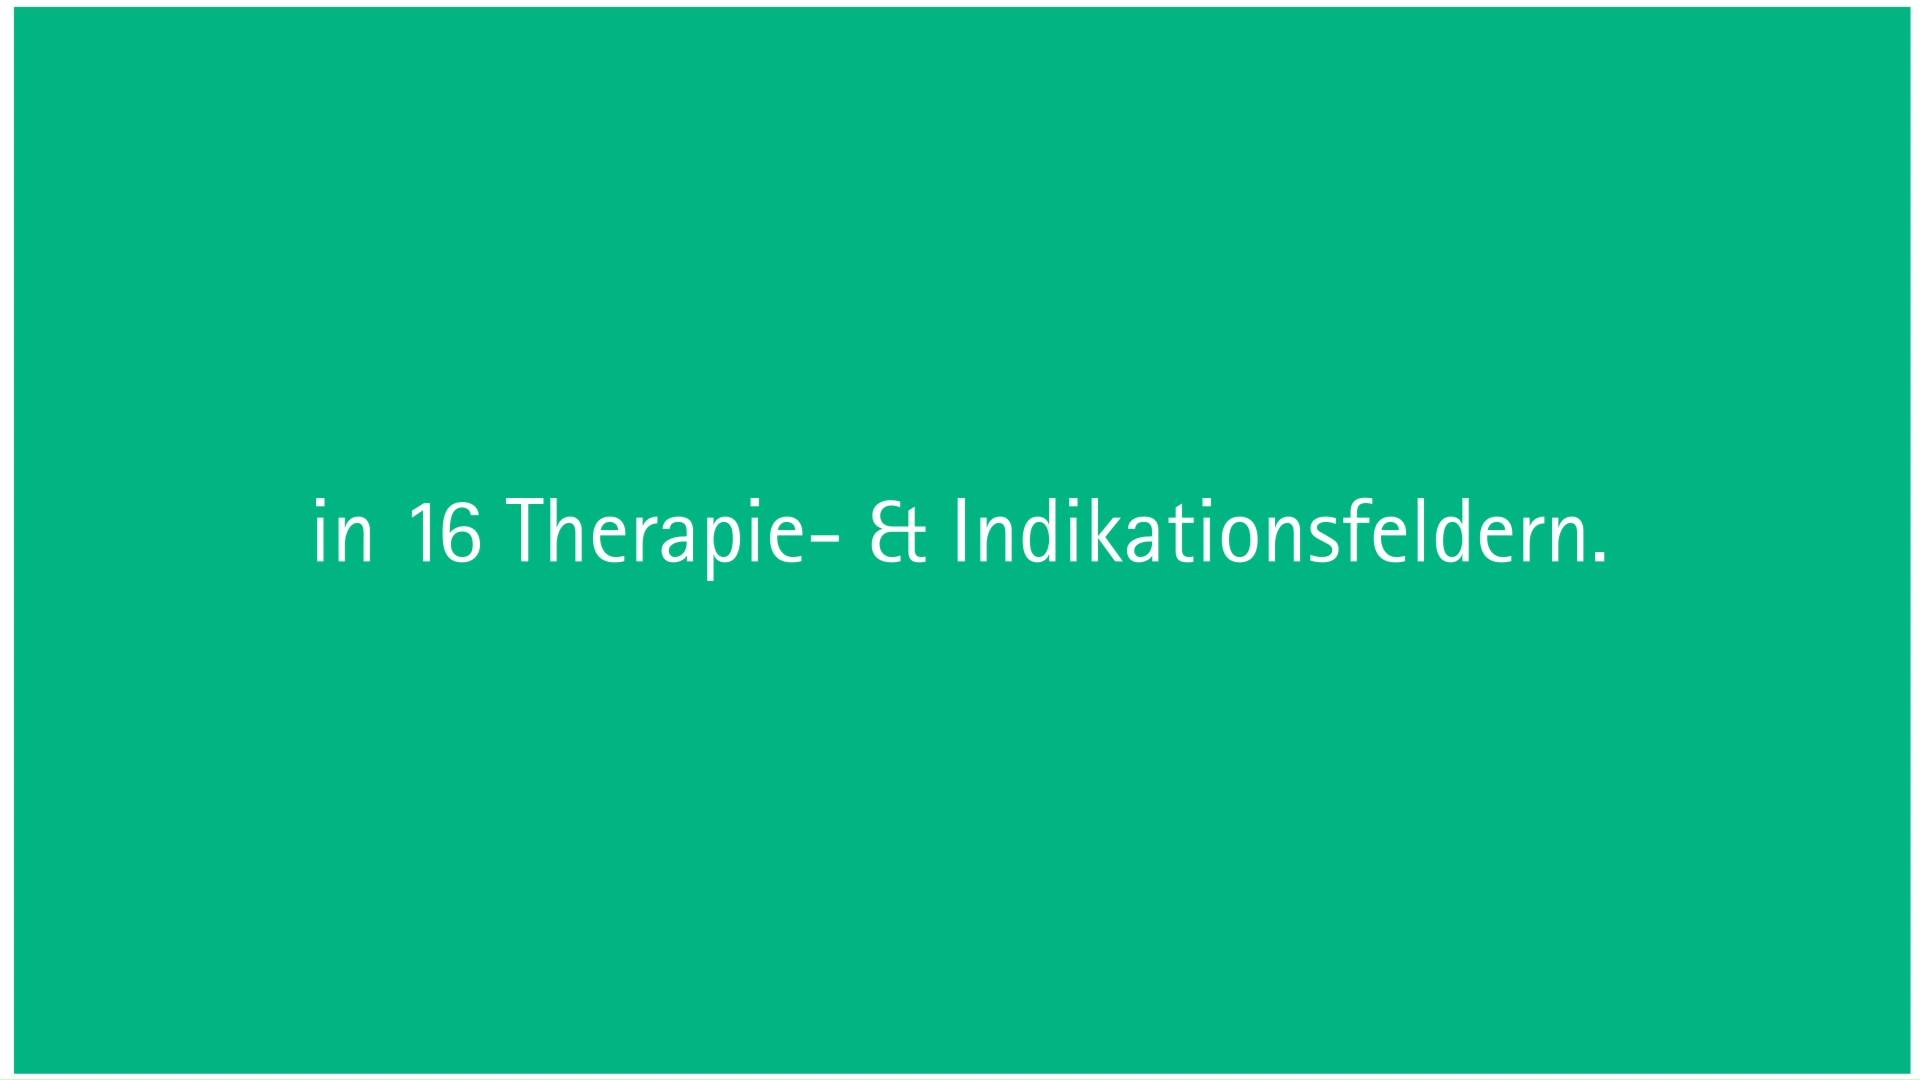 In 16 Therapie- & Indikationsfeldern